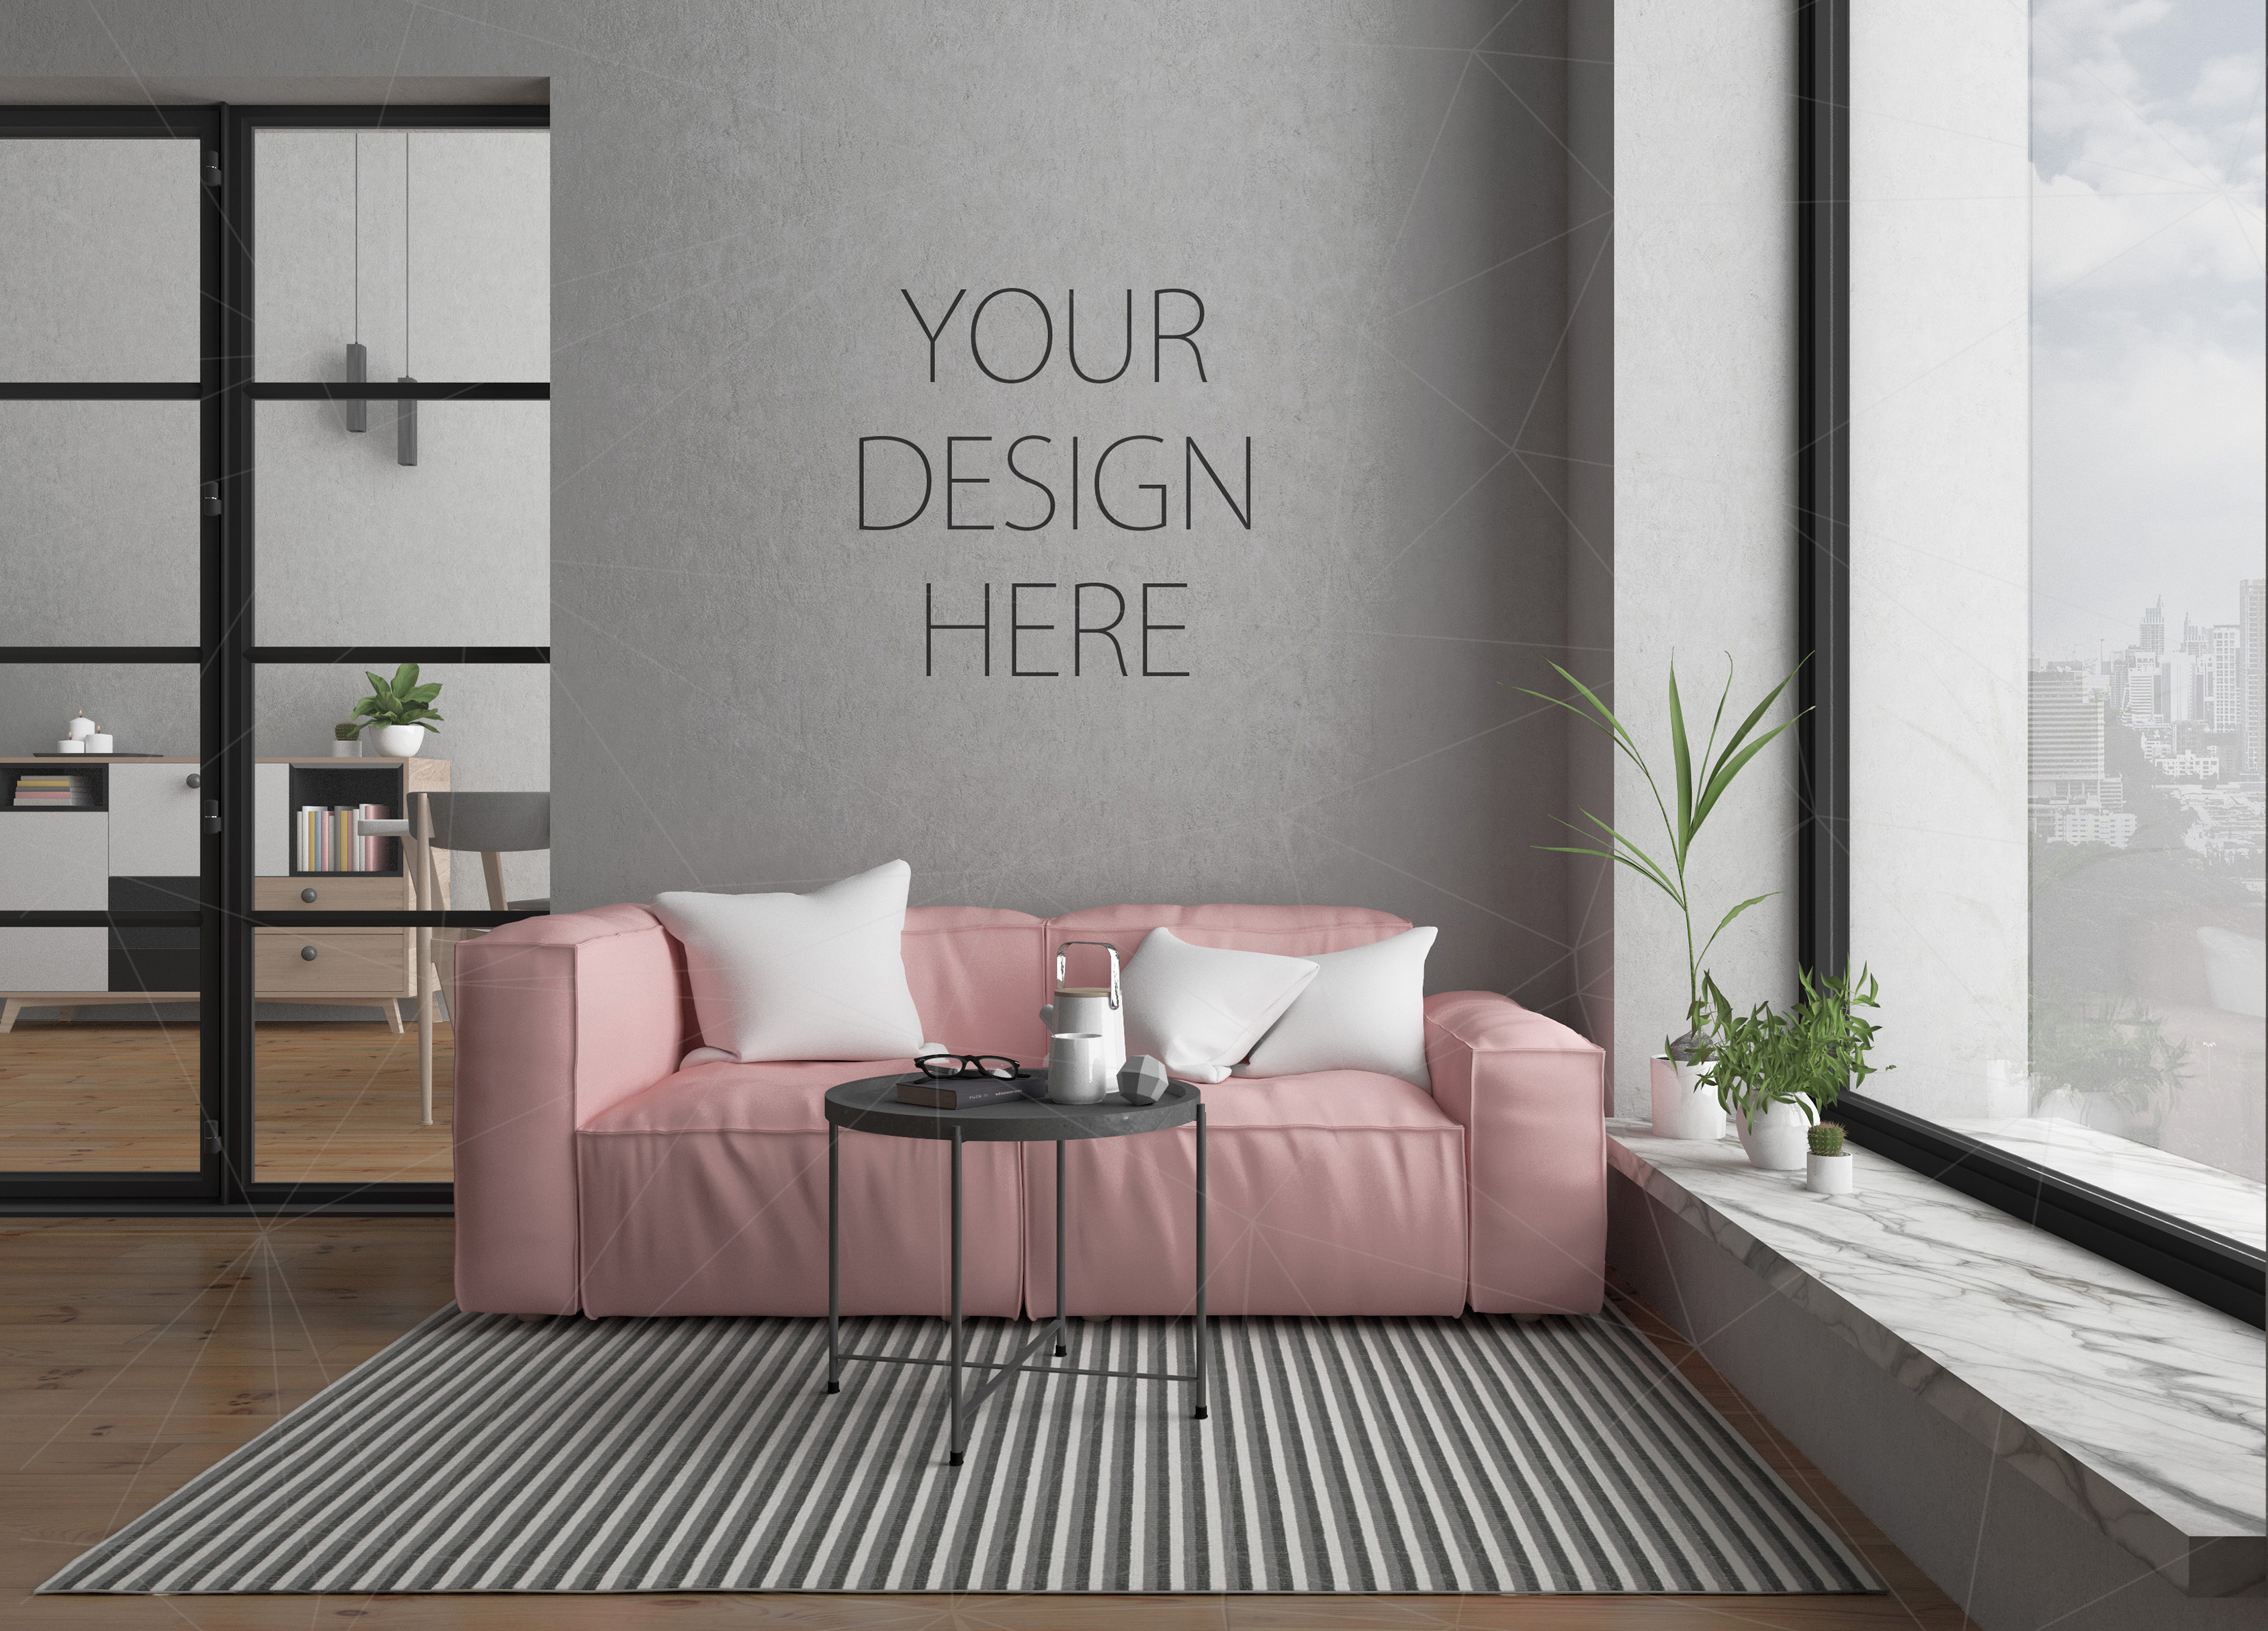 Interior mockup bundle - blank wall mock up example image 2